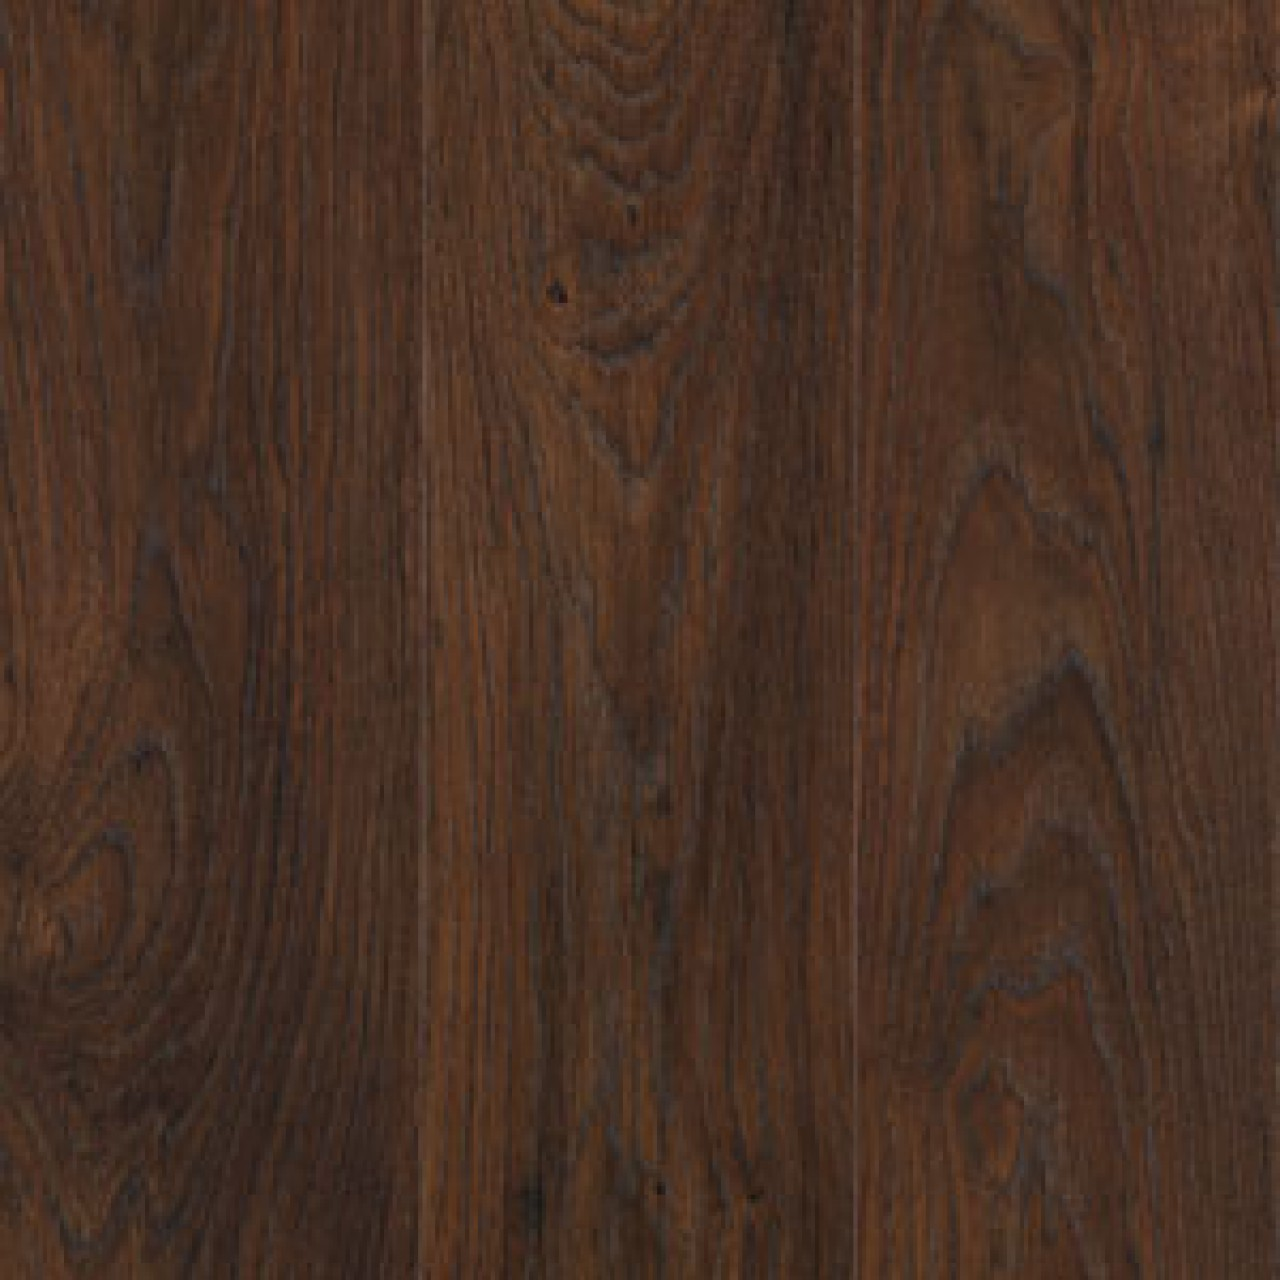 mohawk laminate flooring what 39 s trending and why On mohawk laminate flooring